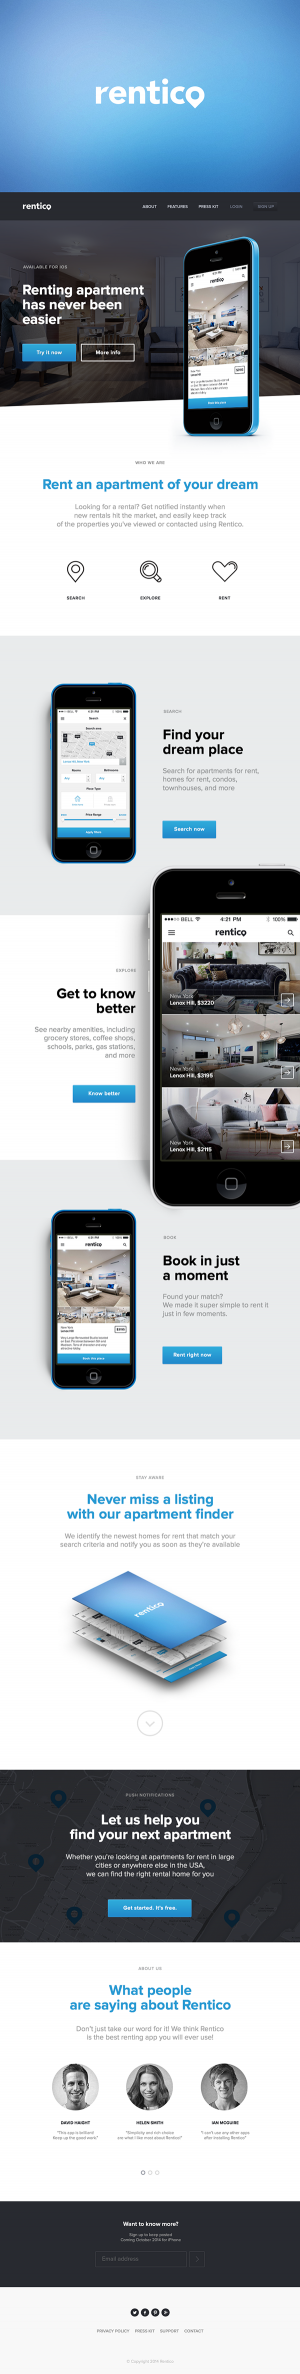 Rentico – mobile application for renting an apartment by Serge Vasil